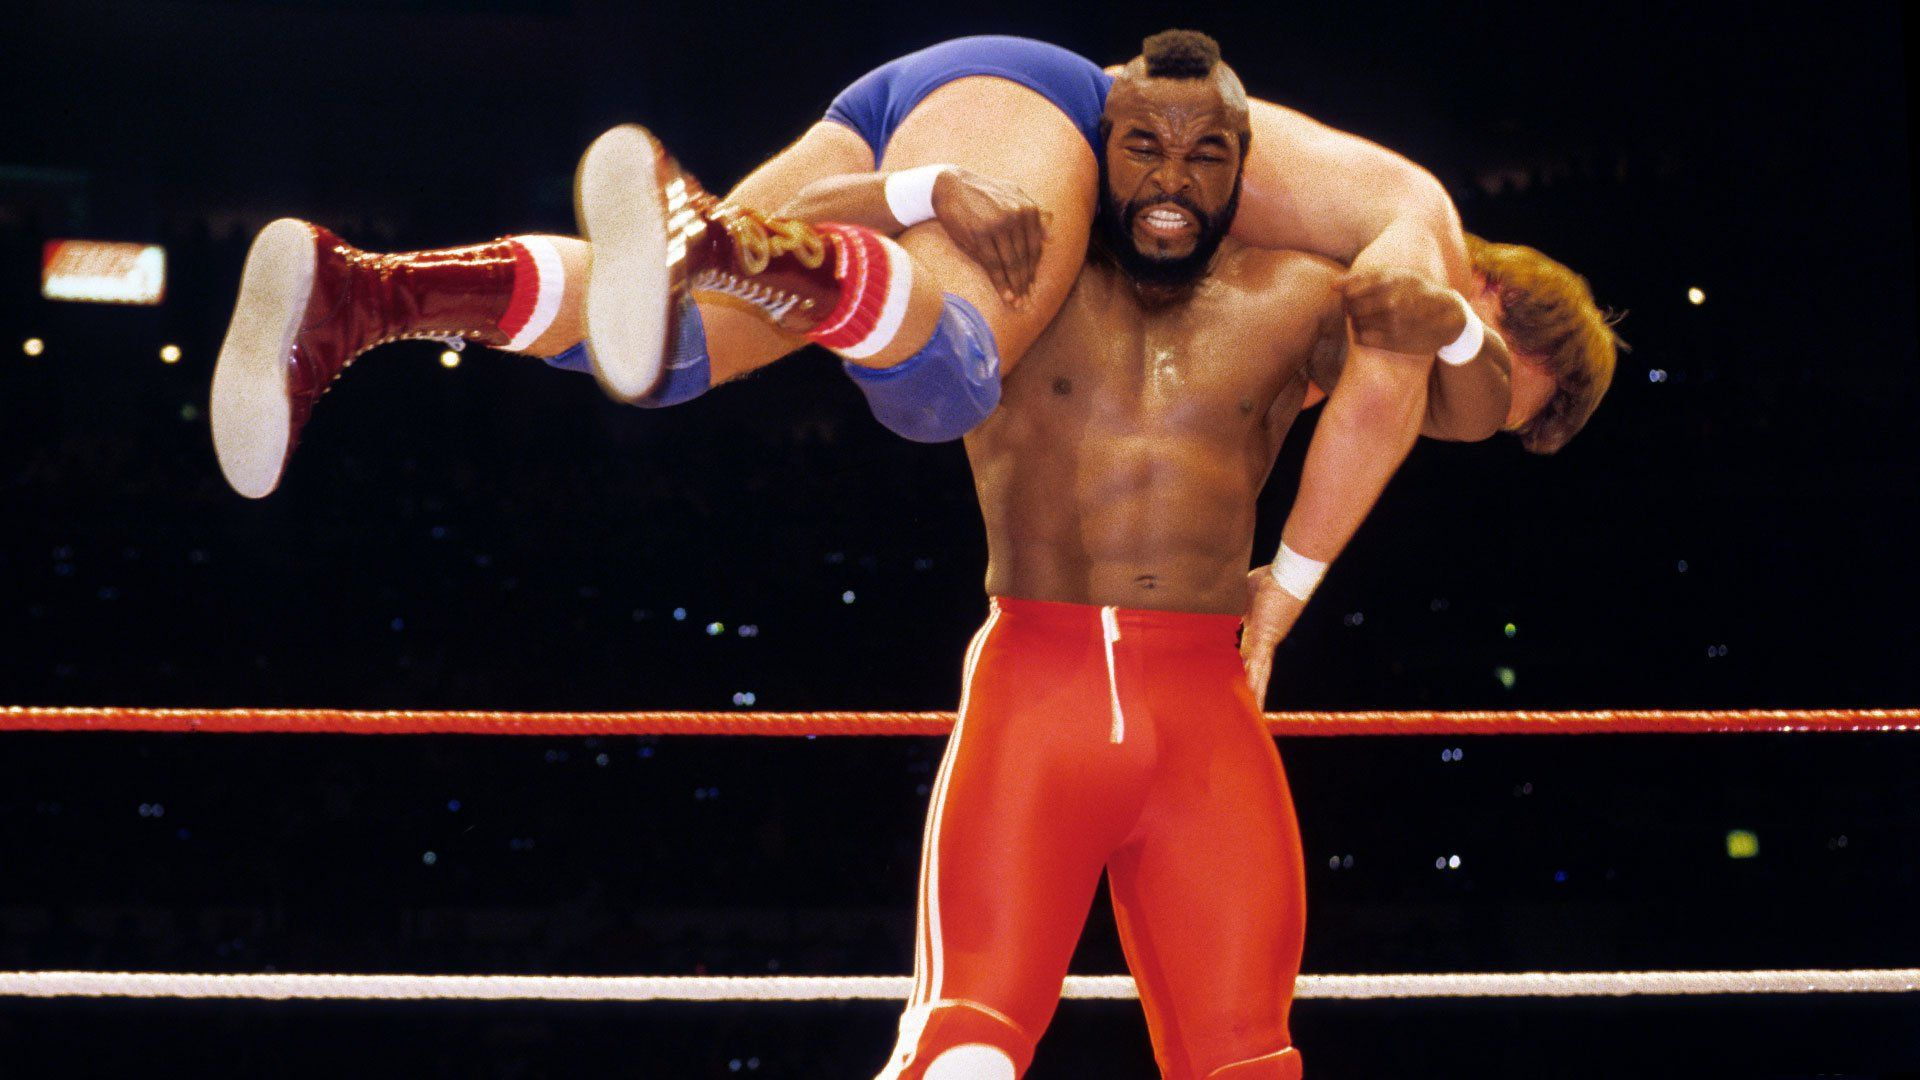 Mr T in the WWE